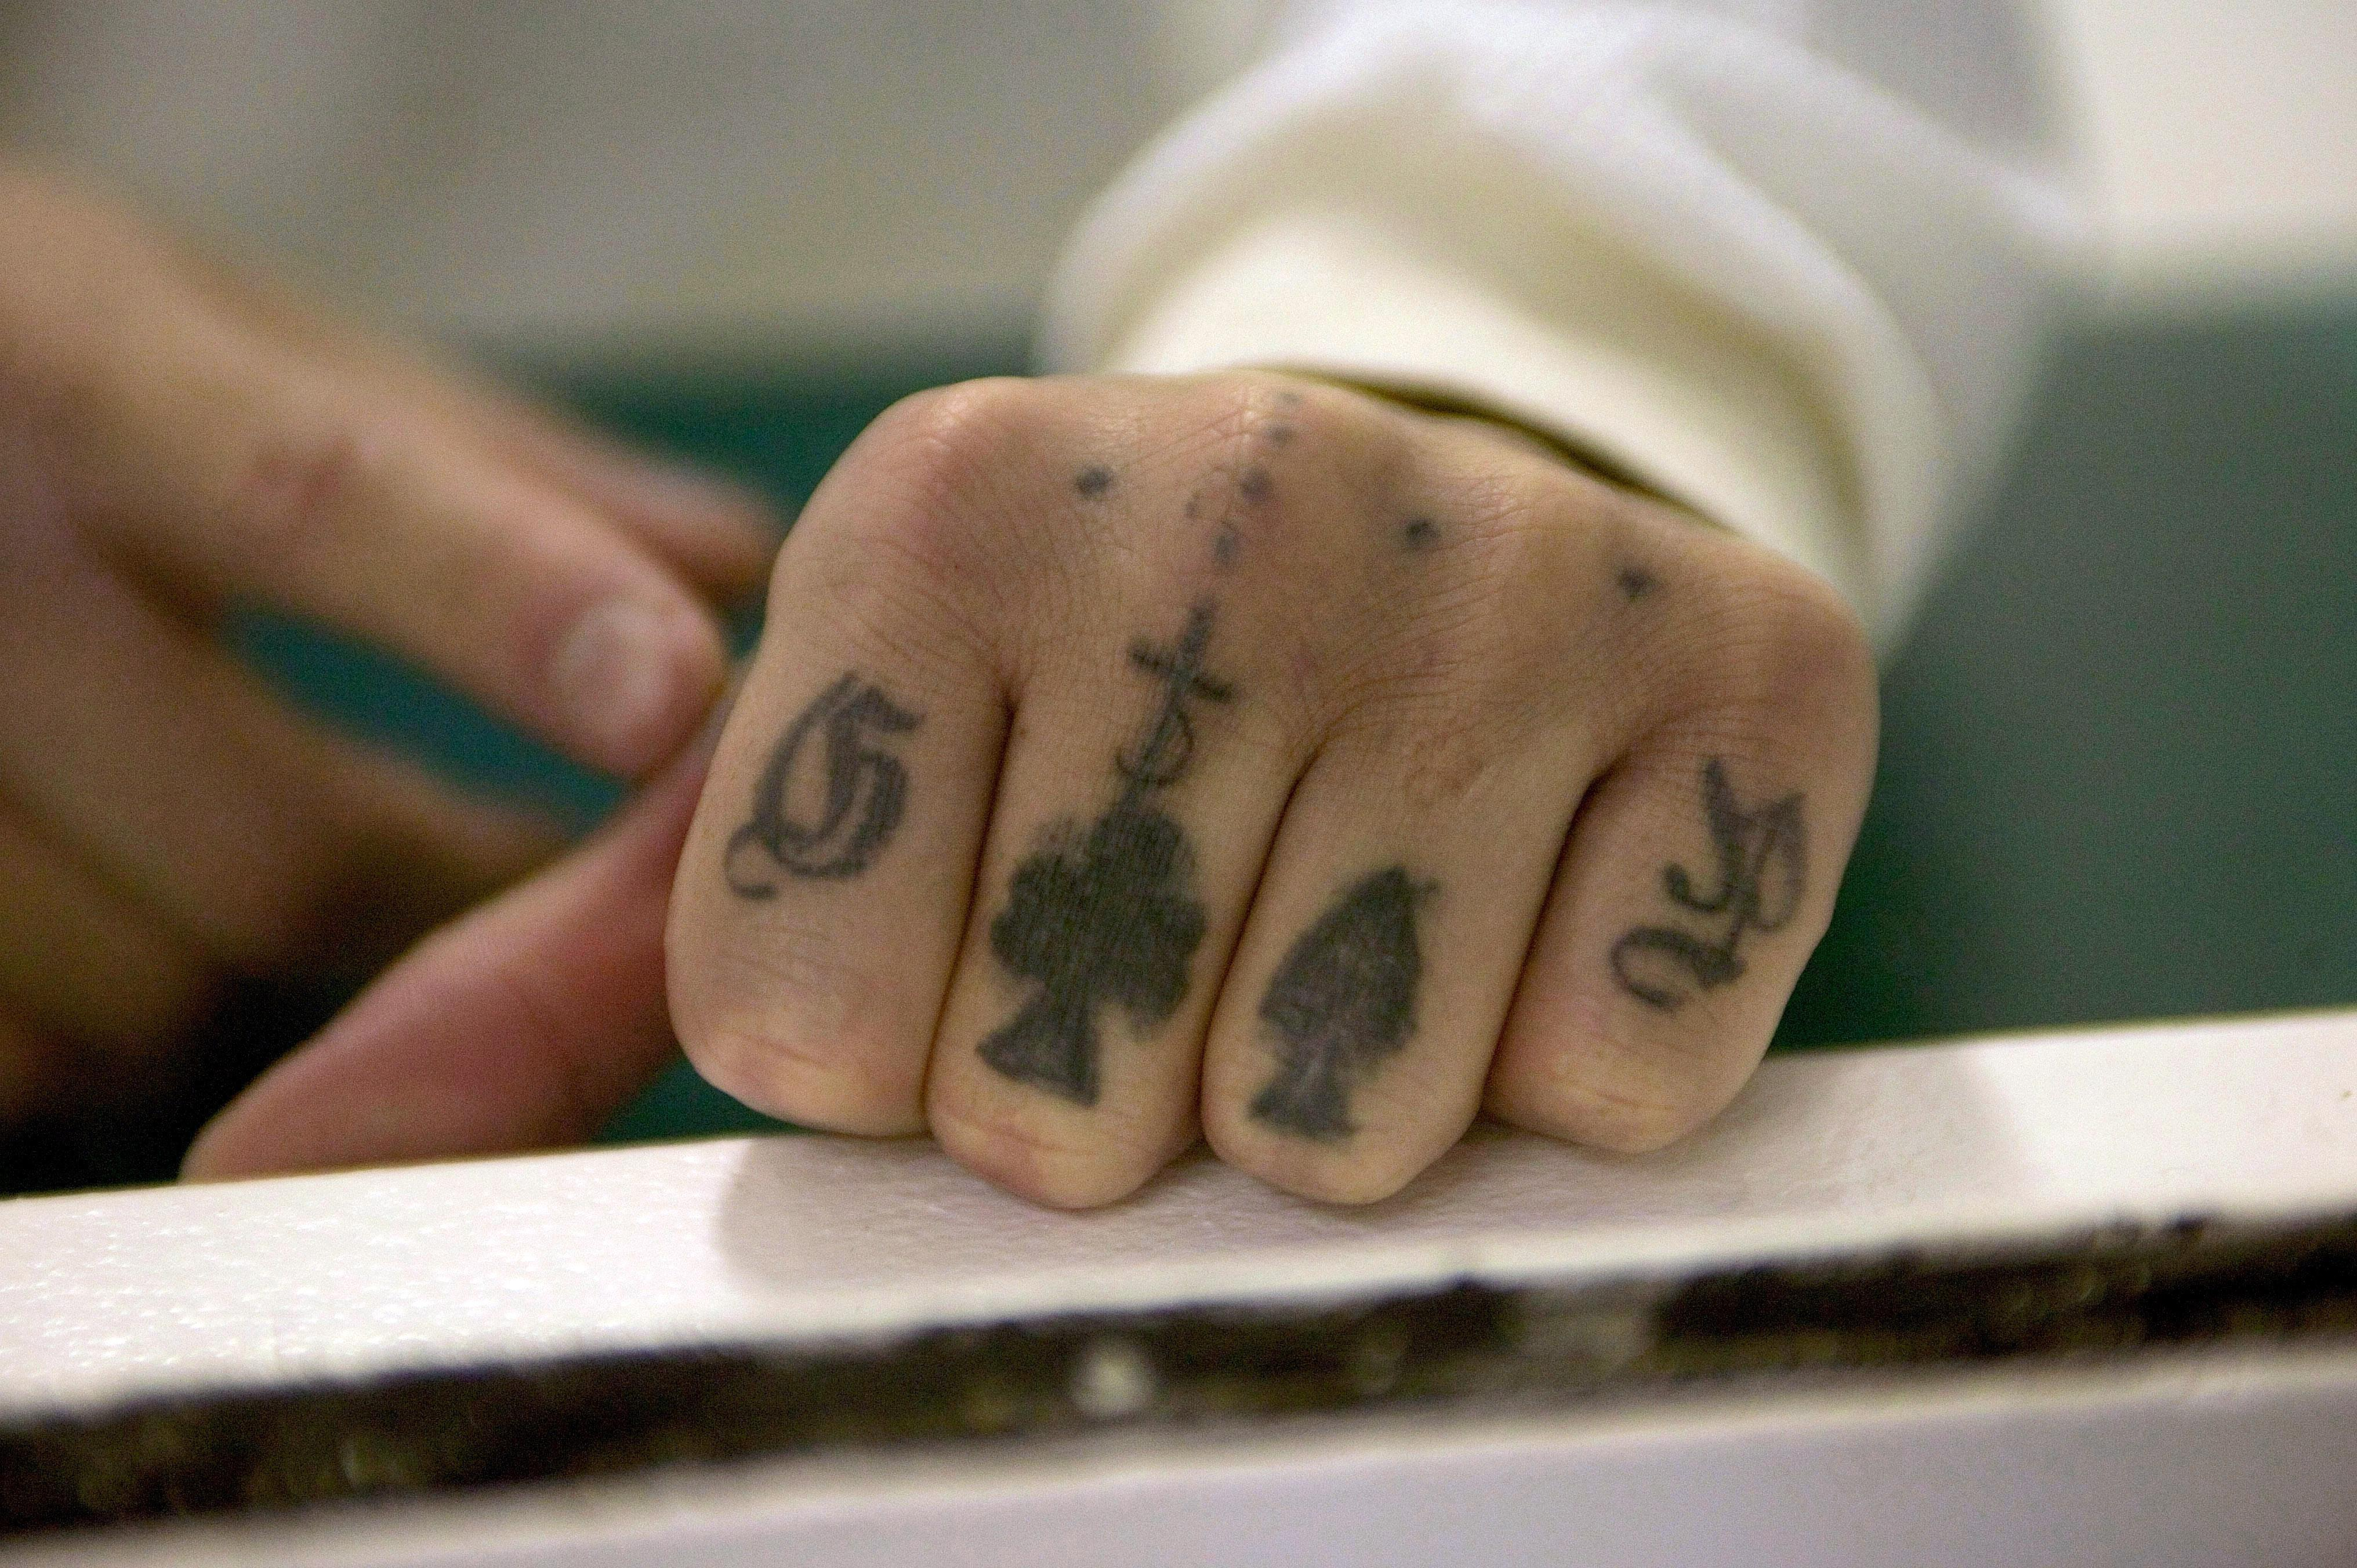 Law Enforcement Around The U.S. Fight The Street Gang MS-13